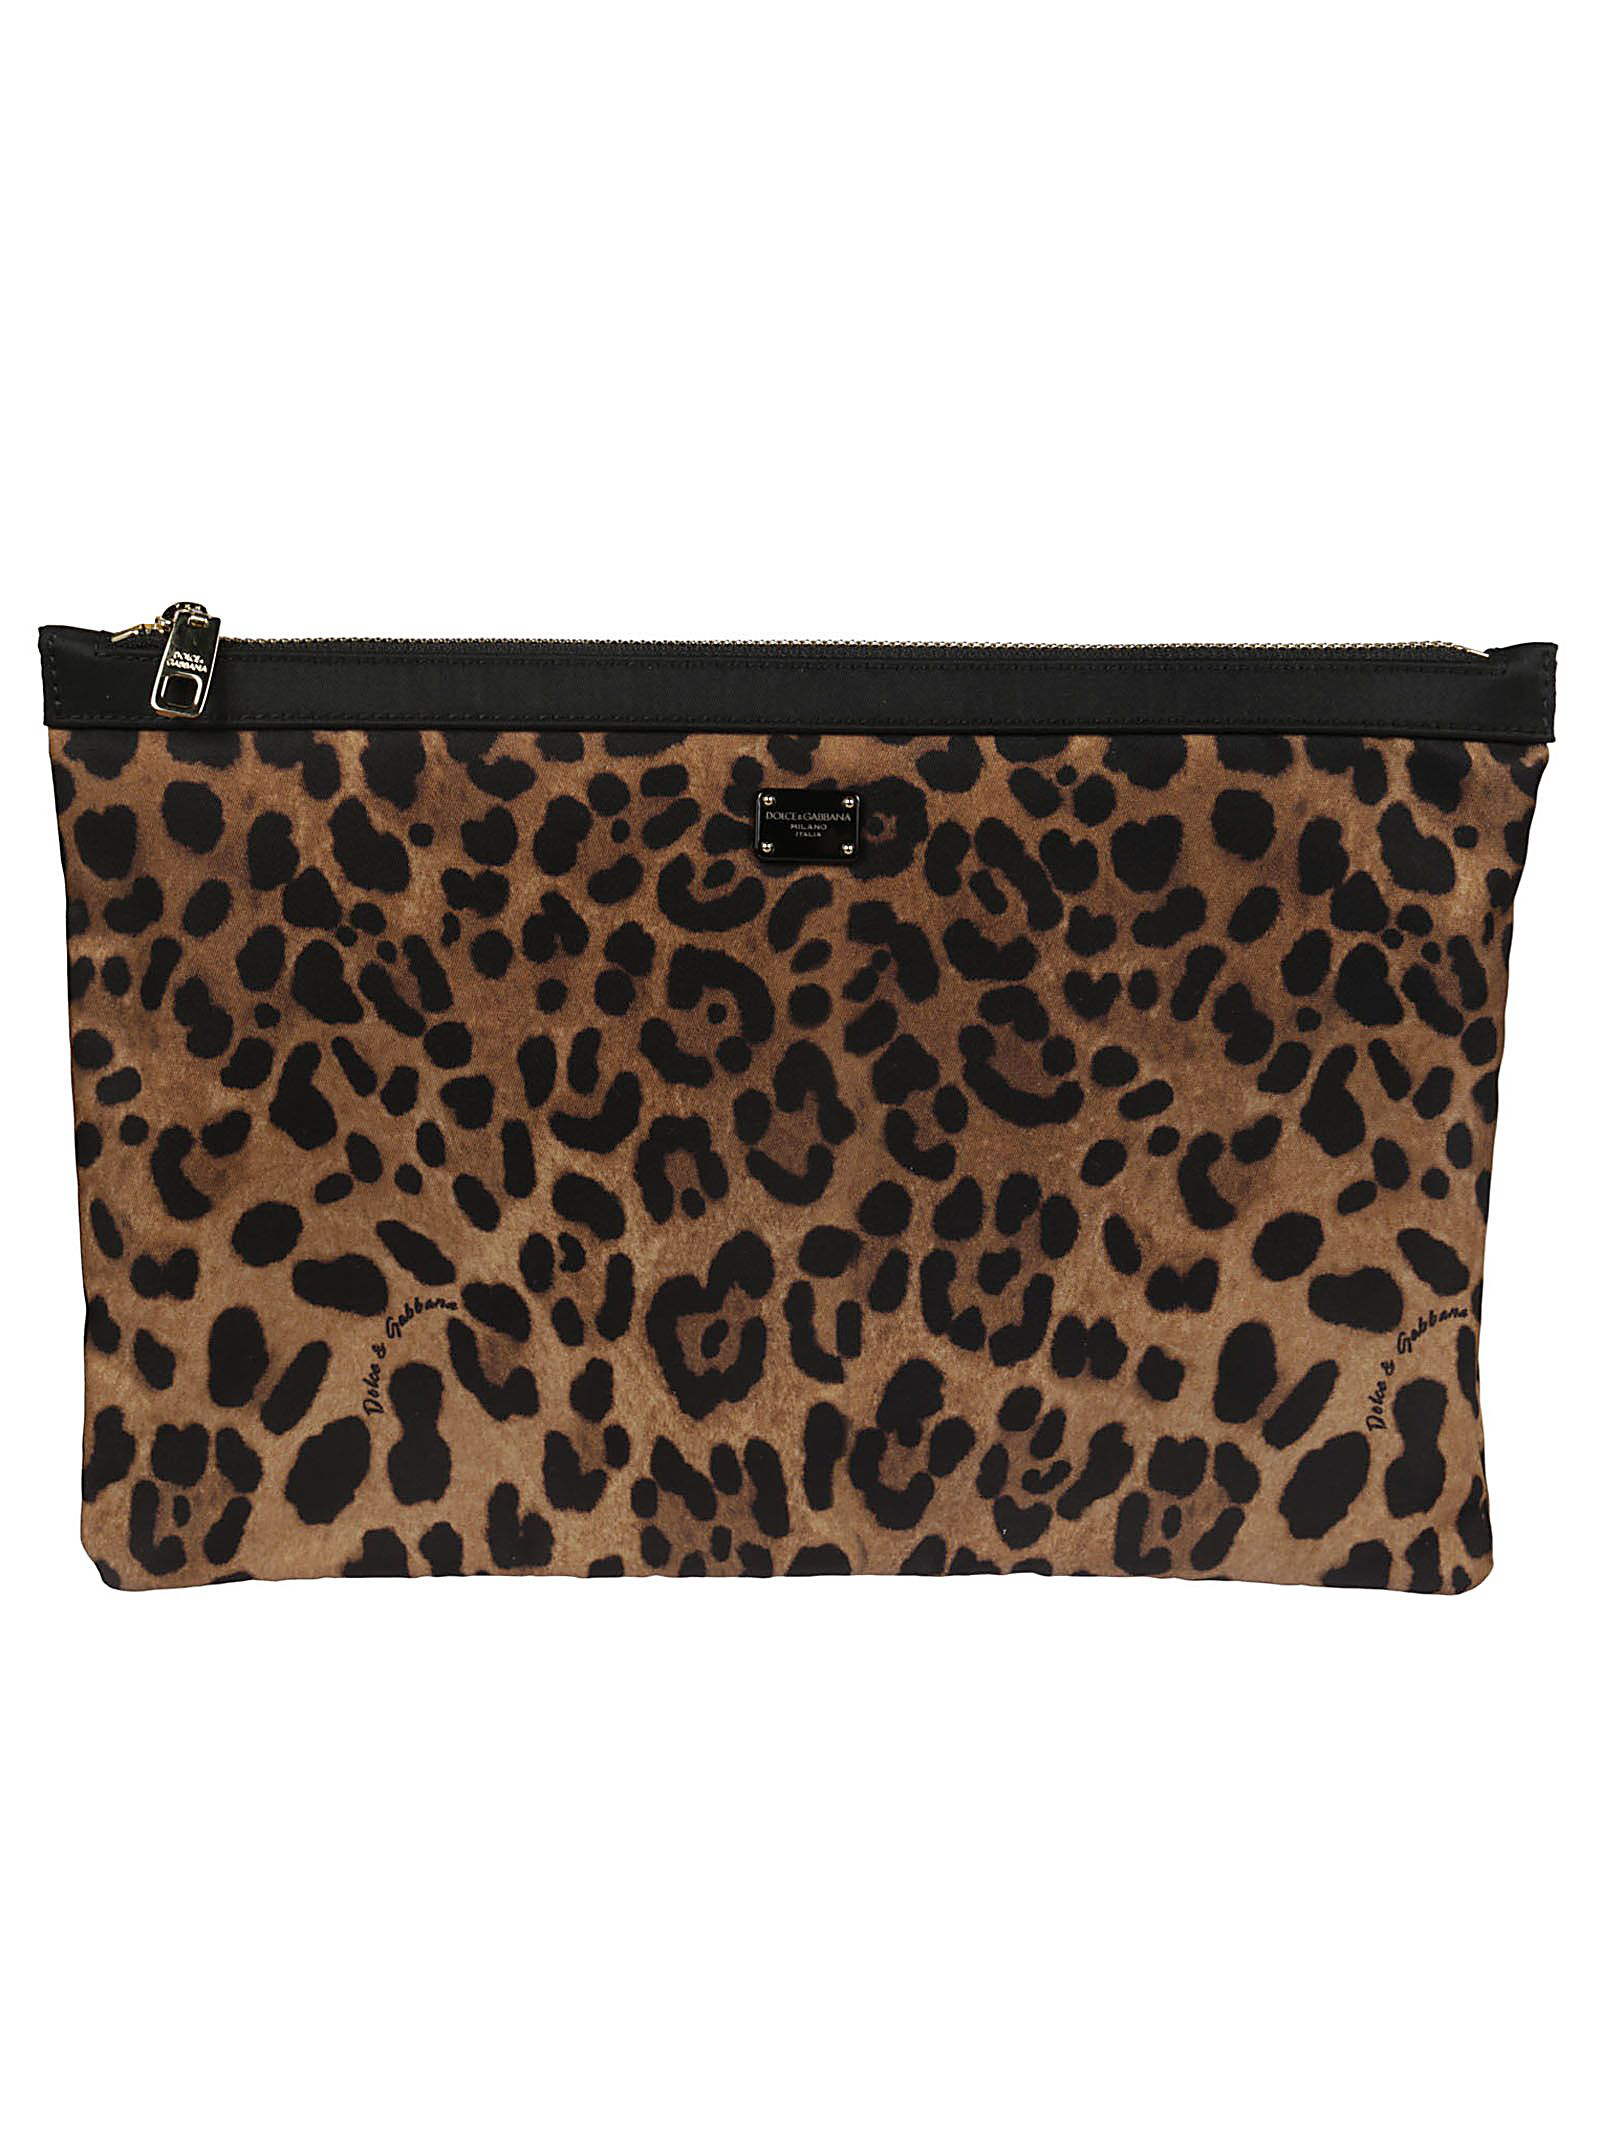 27dec15dbdb24 Dolce And Gabbana Leopard Wallet - Best Photo Wallet Justiceforkenny.Org